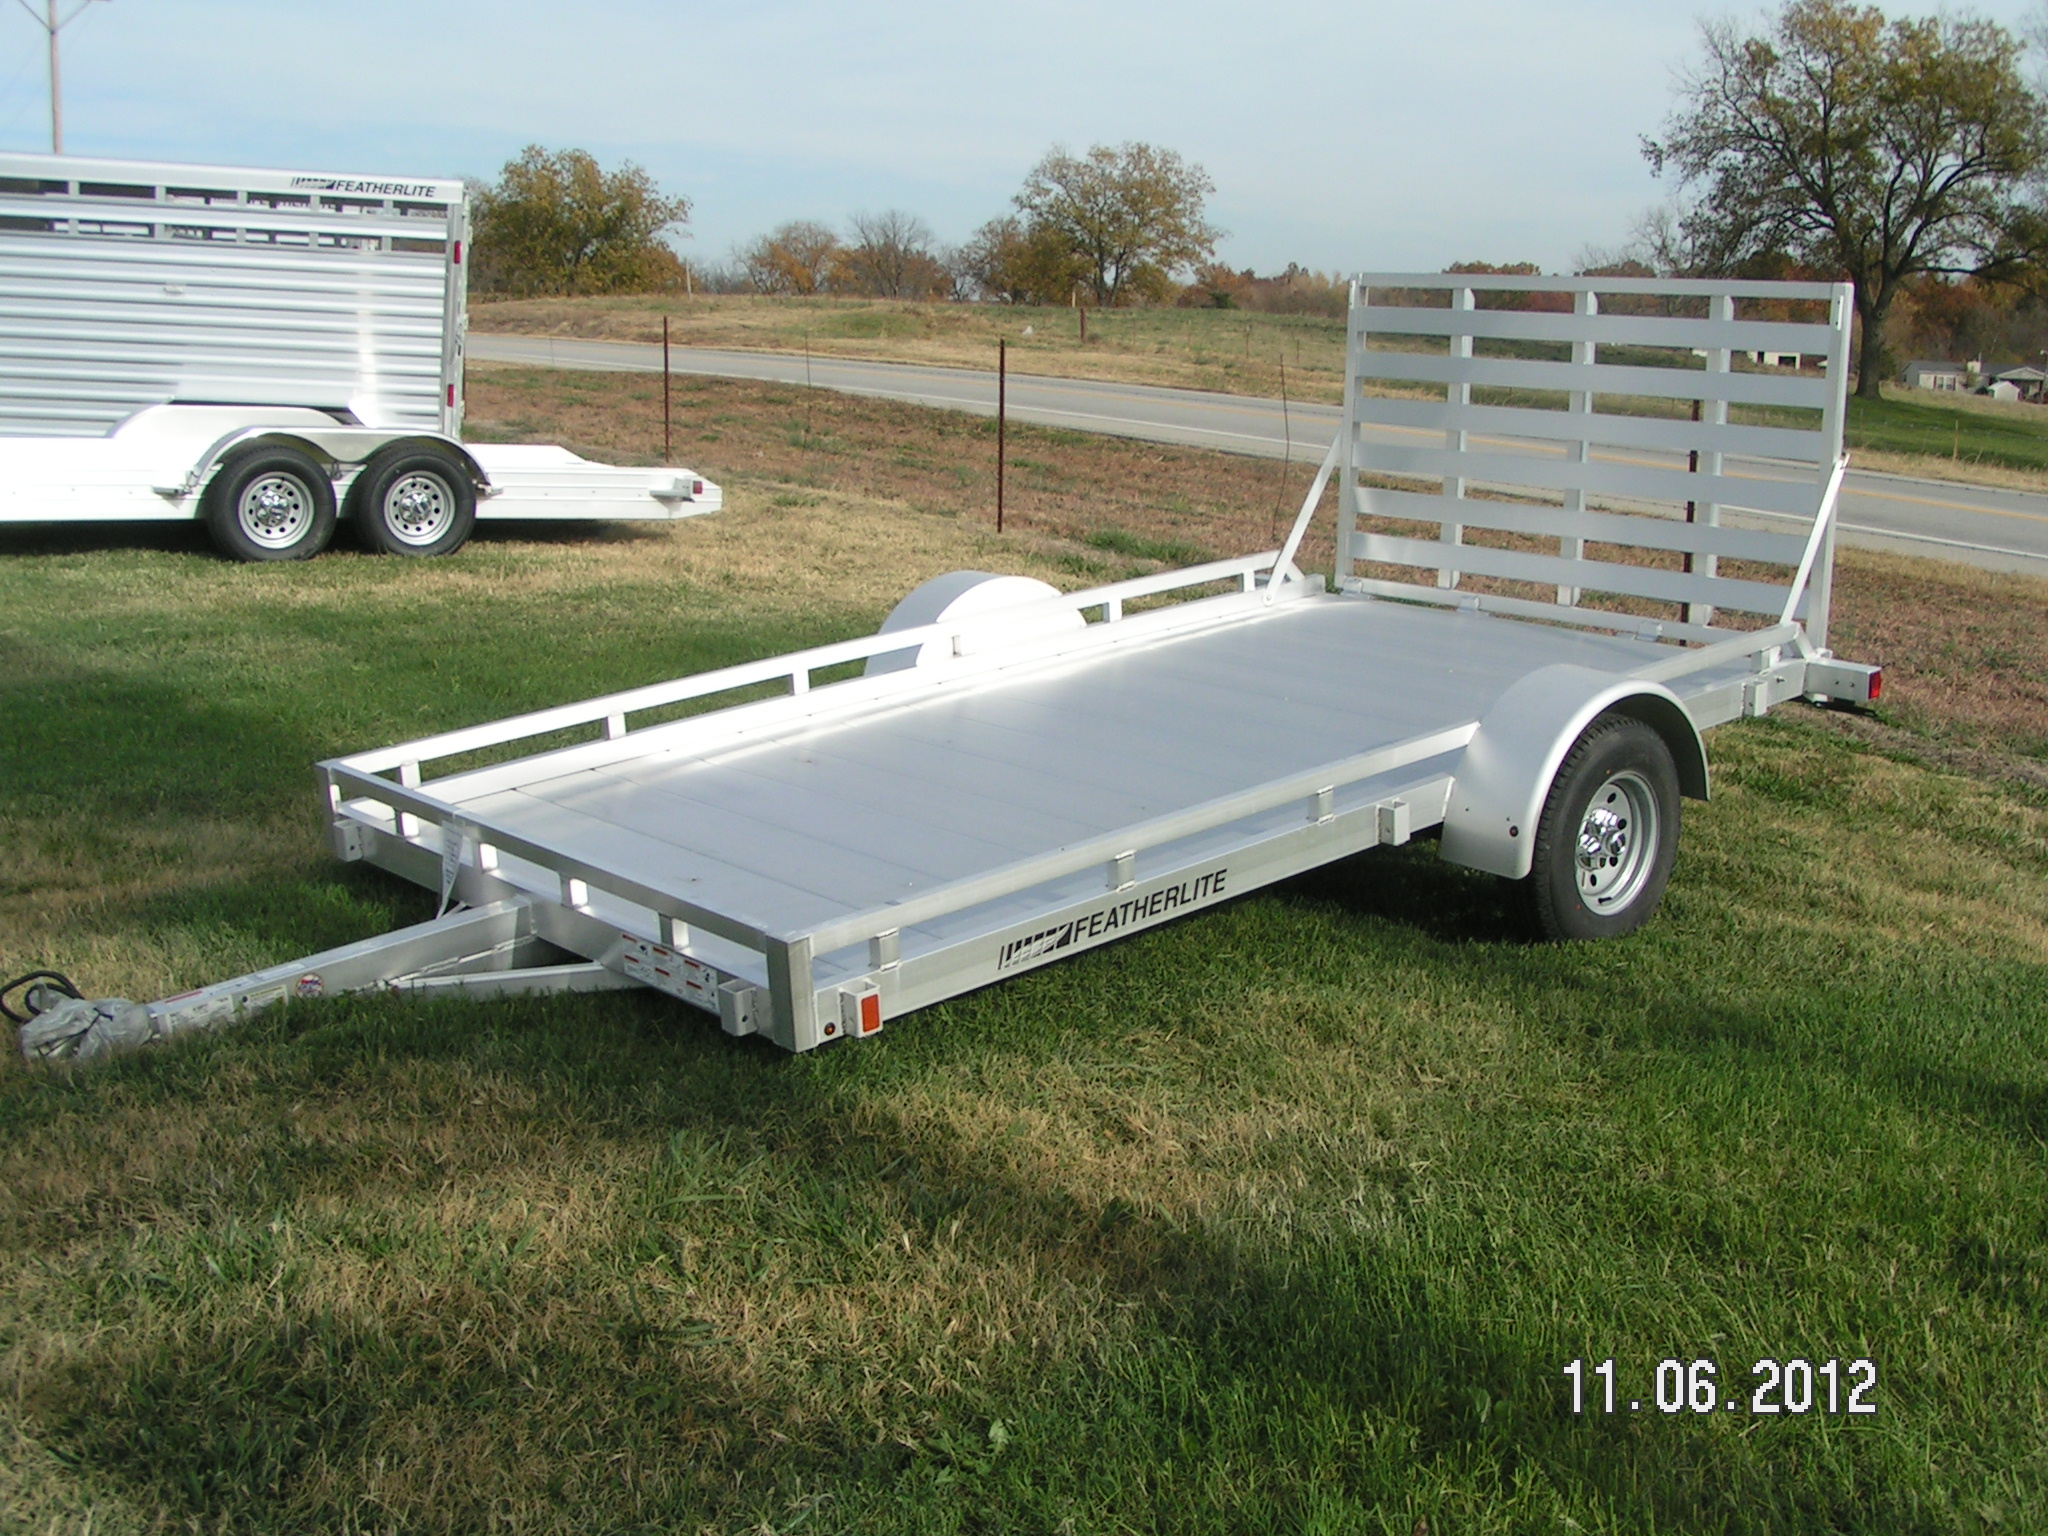 haulmark cargo trailer wiring diagram images diagram in addition horse trailer wiring diagram besides